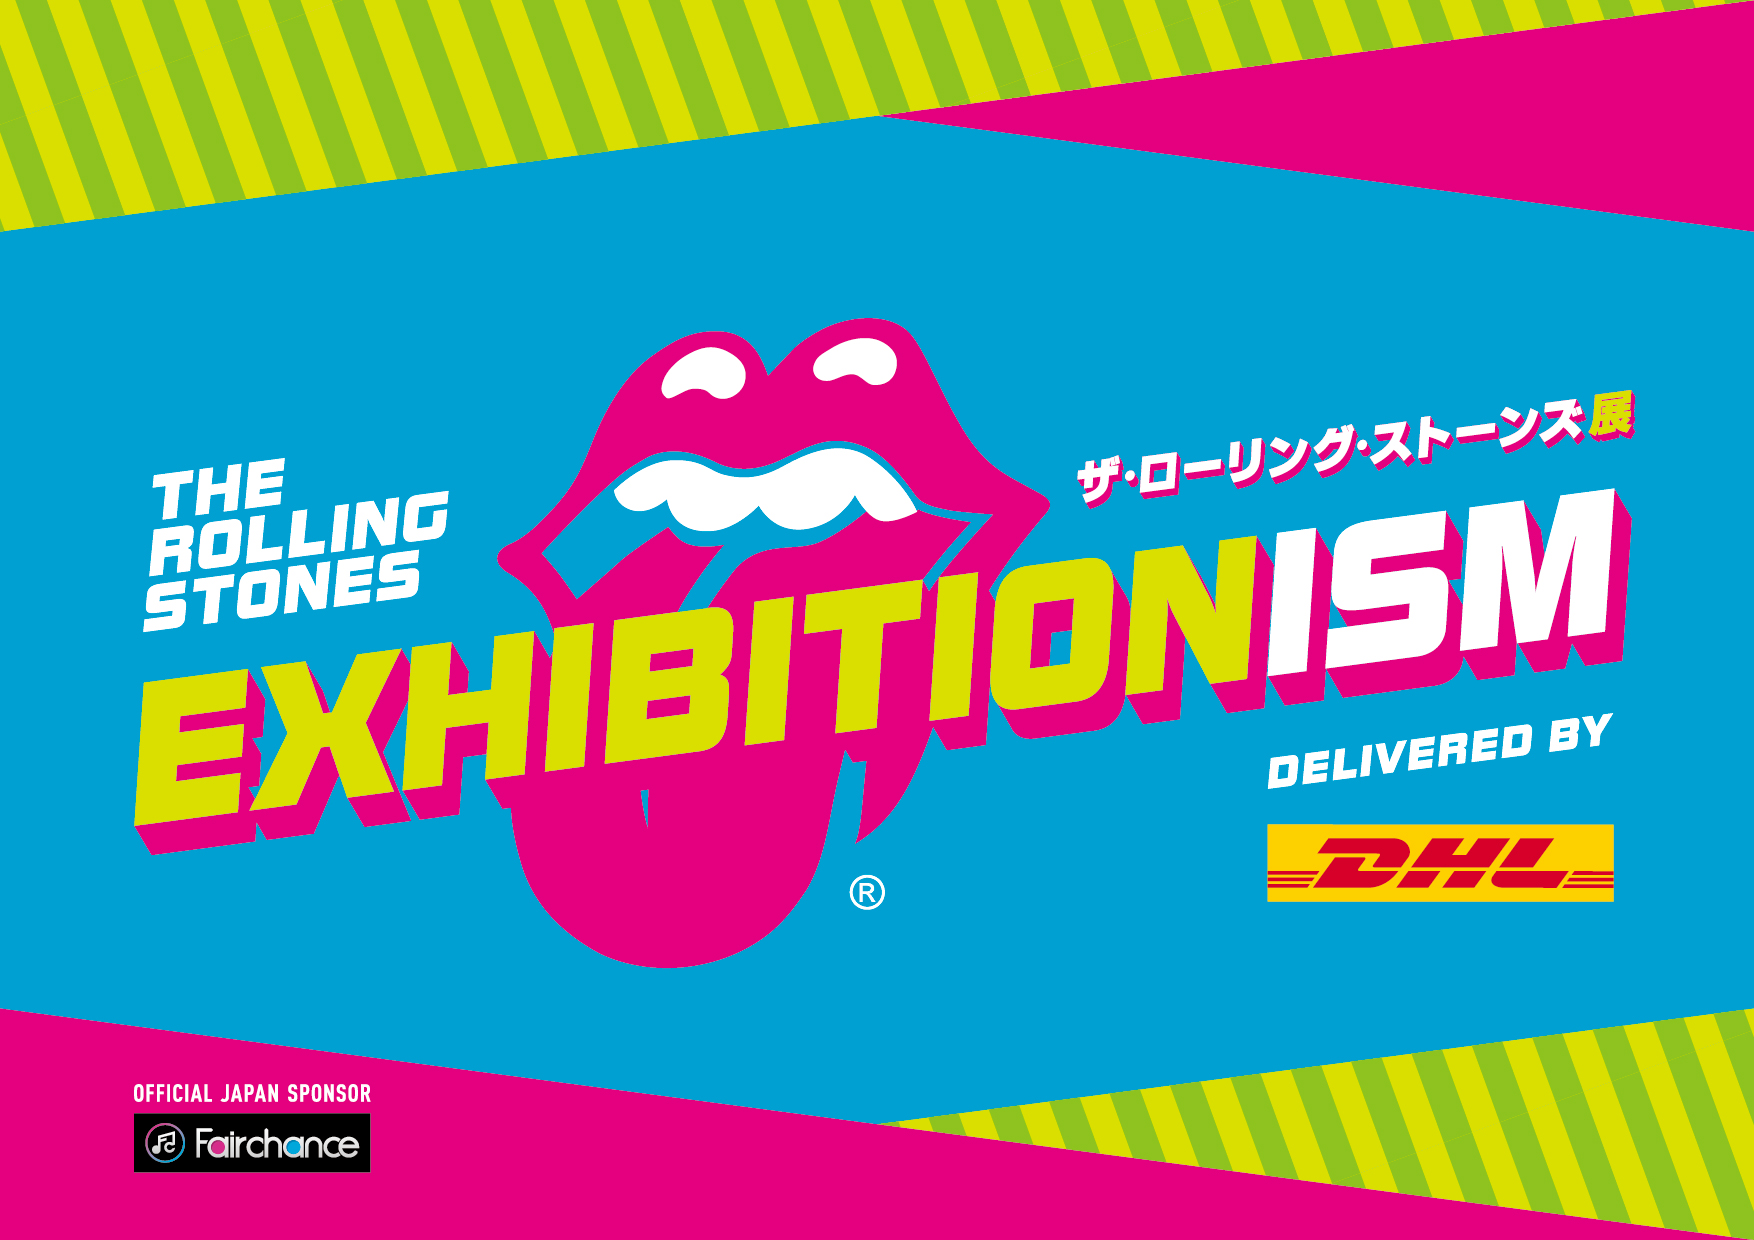 """Exhibitionism – The Rolling Stones Exhibition"" delivered by DHL"